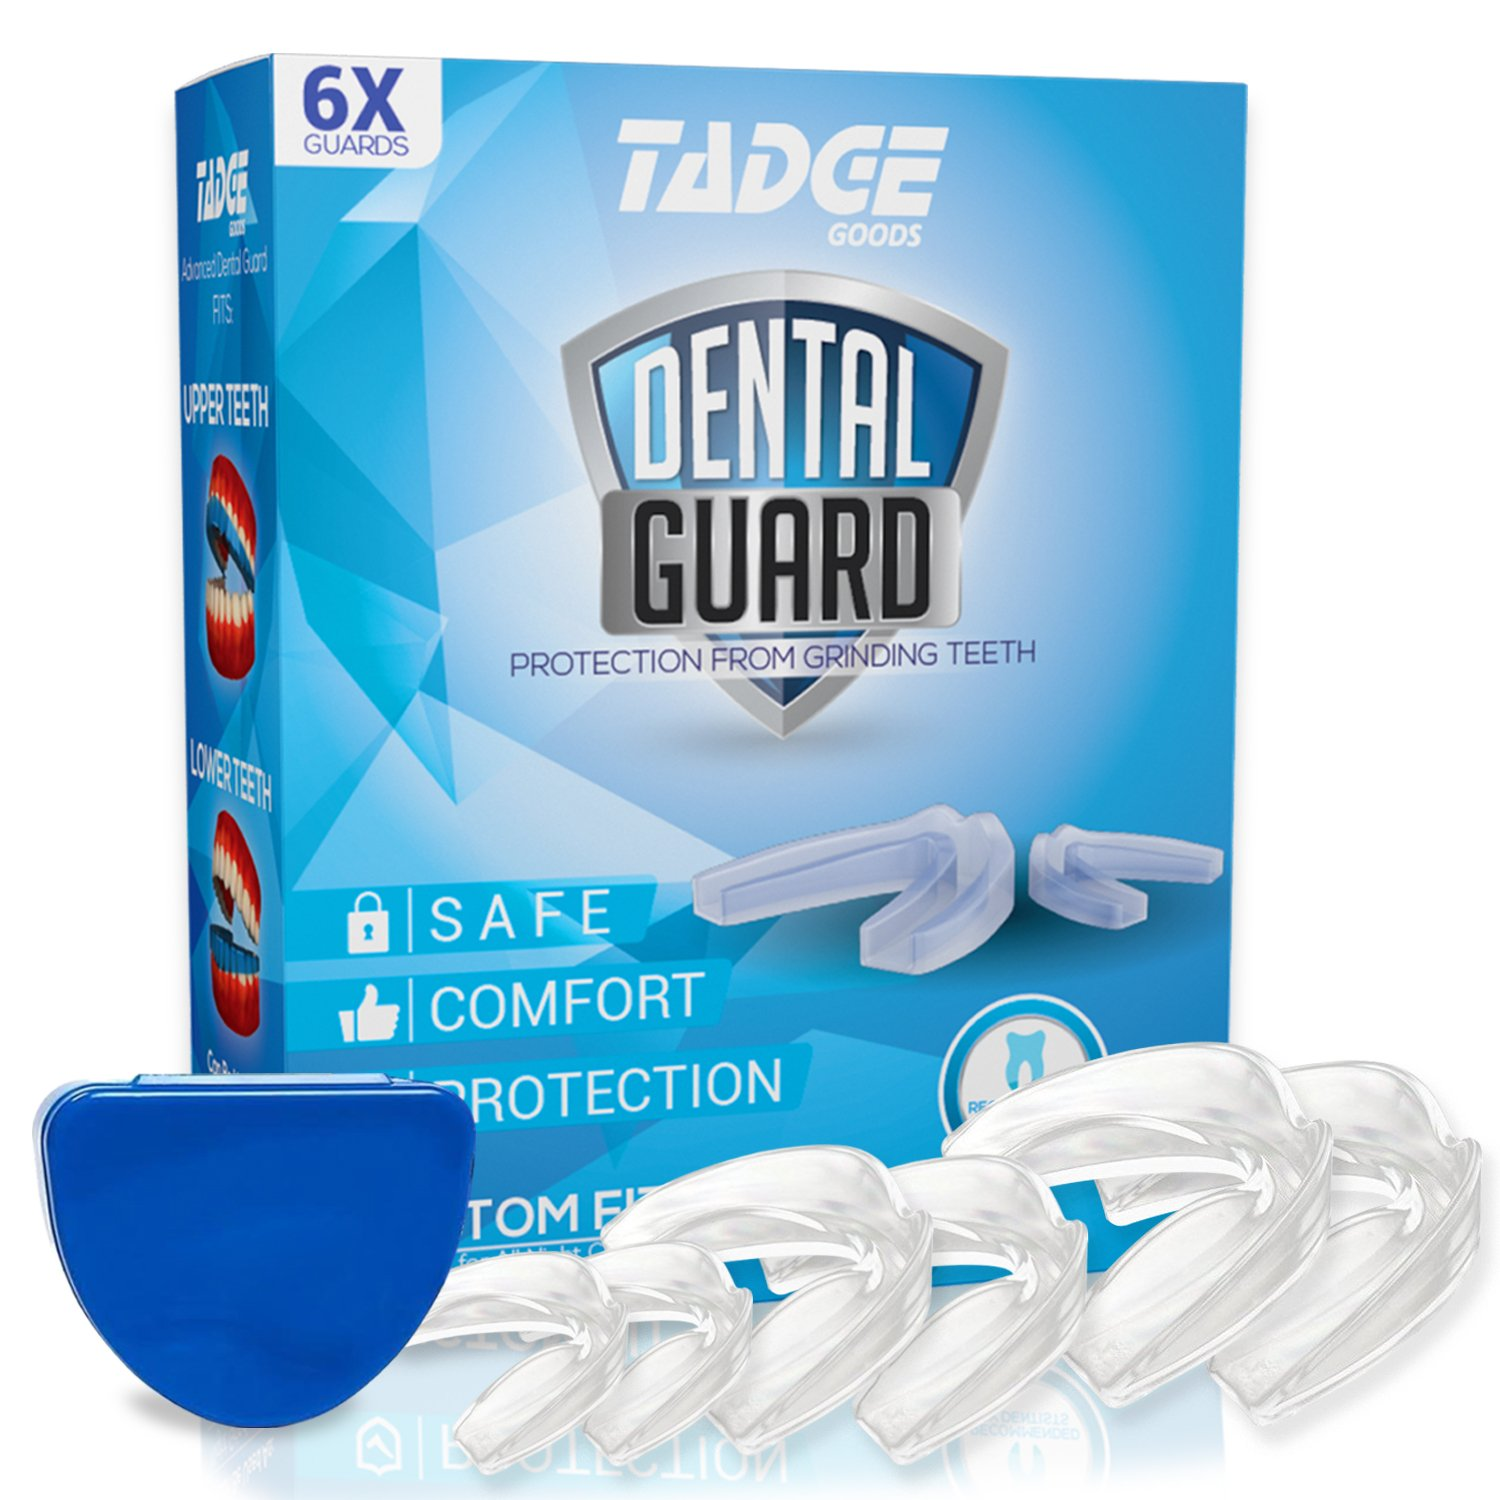 Tadge Goods Night Mouth Guard For Grinding Teeth – Pack of 6 – Bite Guard Helps TMJ, Bruxism, Teeth Clenching | 3 Sizes | Customizable, BPA Free, Includes Fitting Instructions & Anti-Bacterial Case